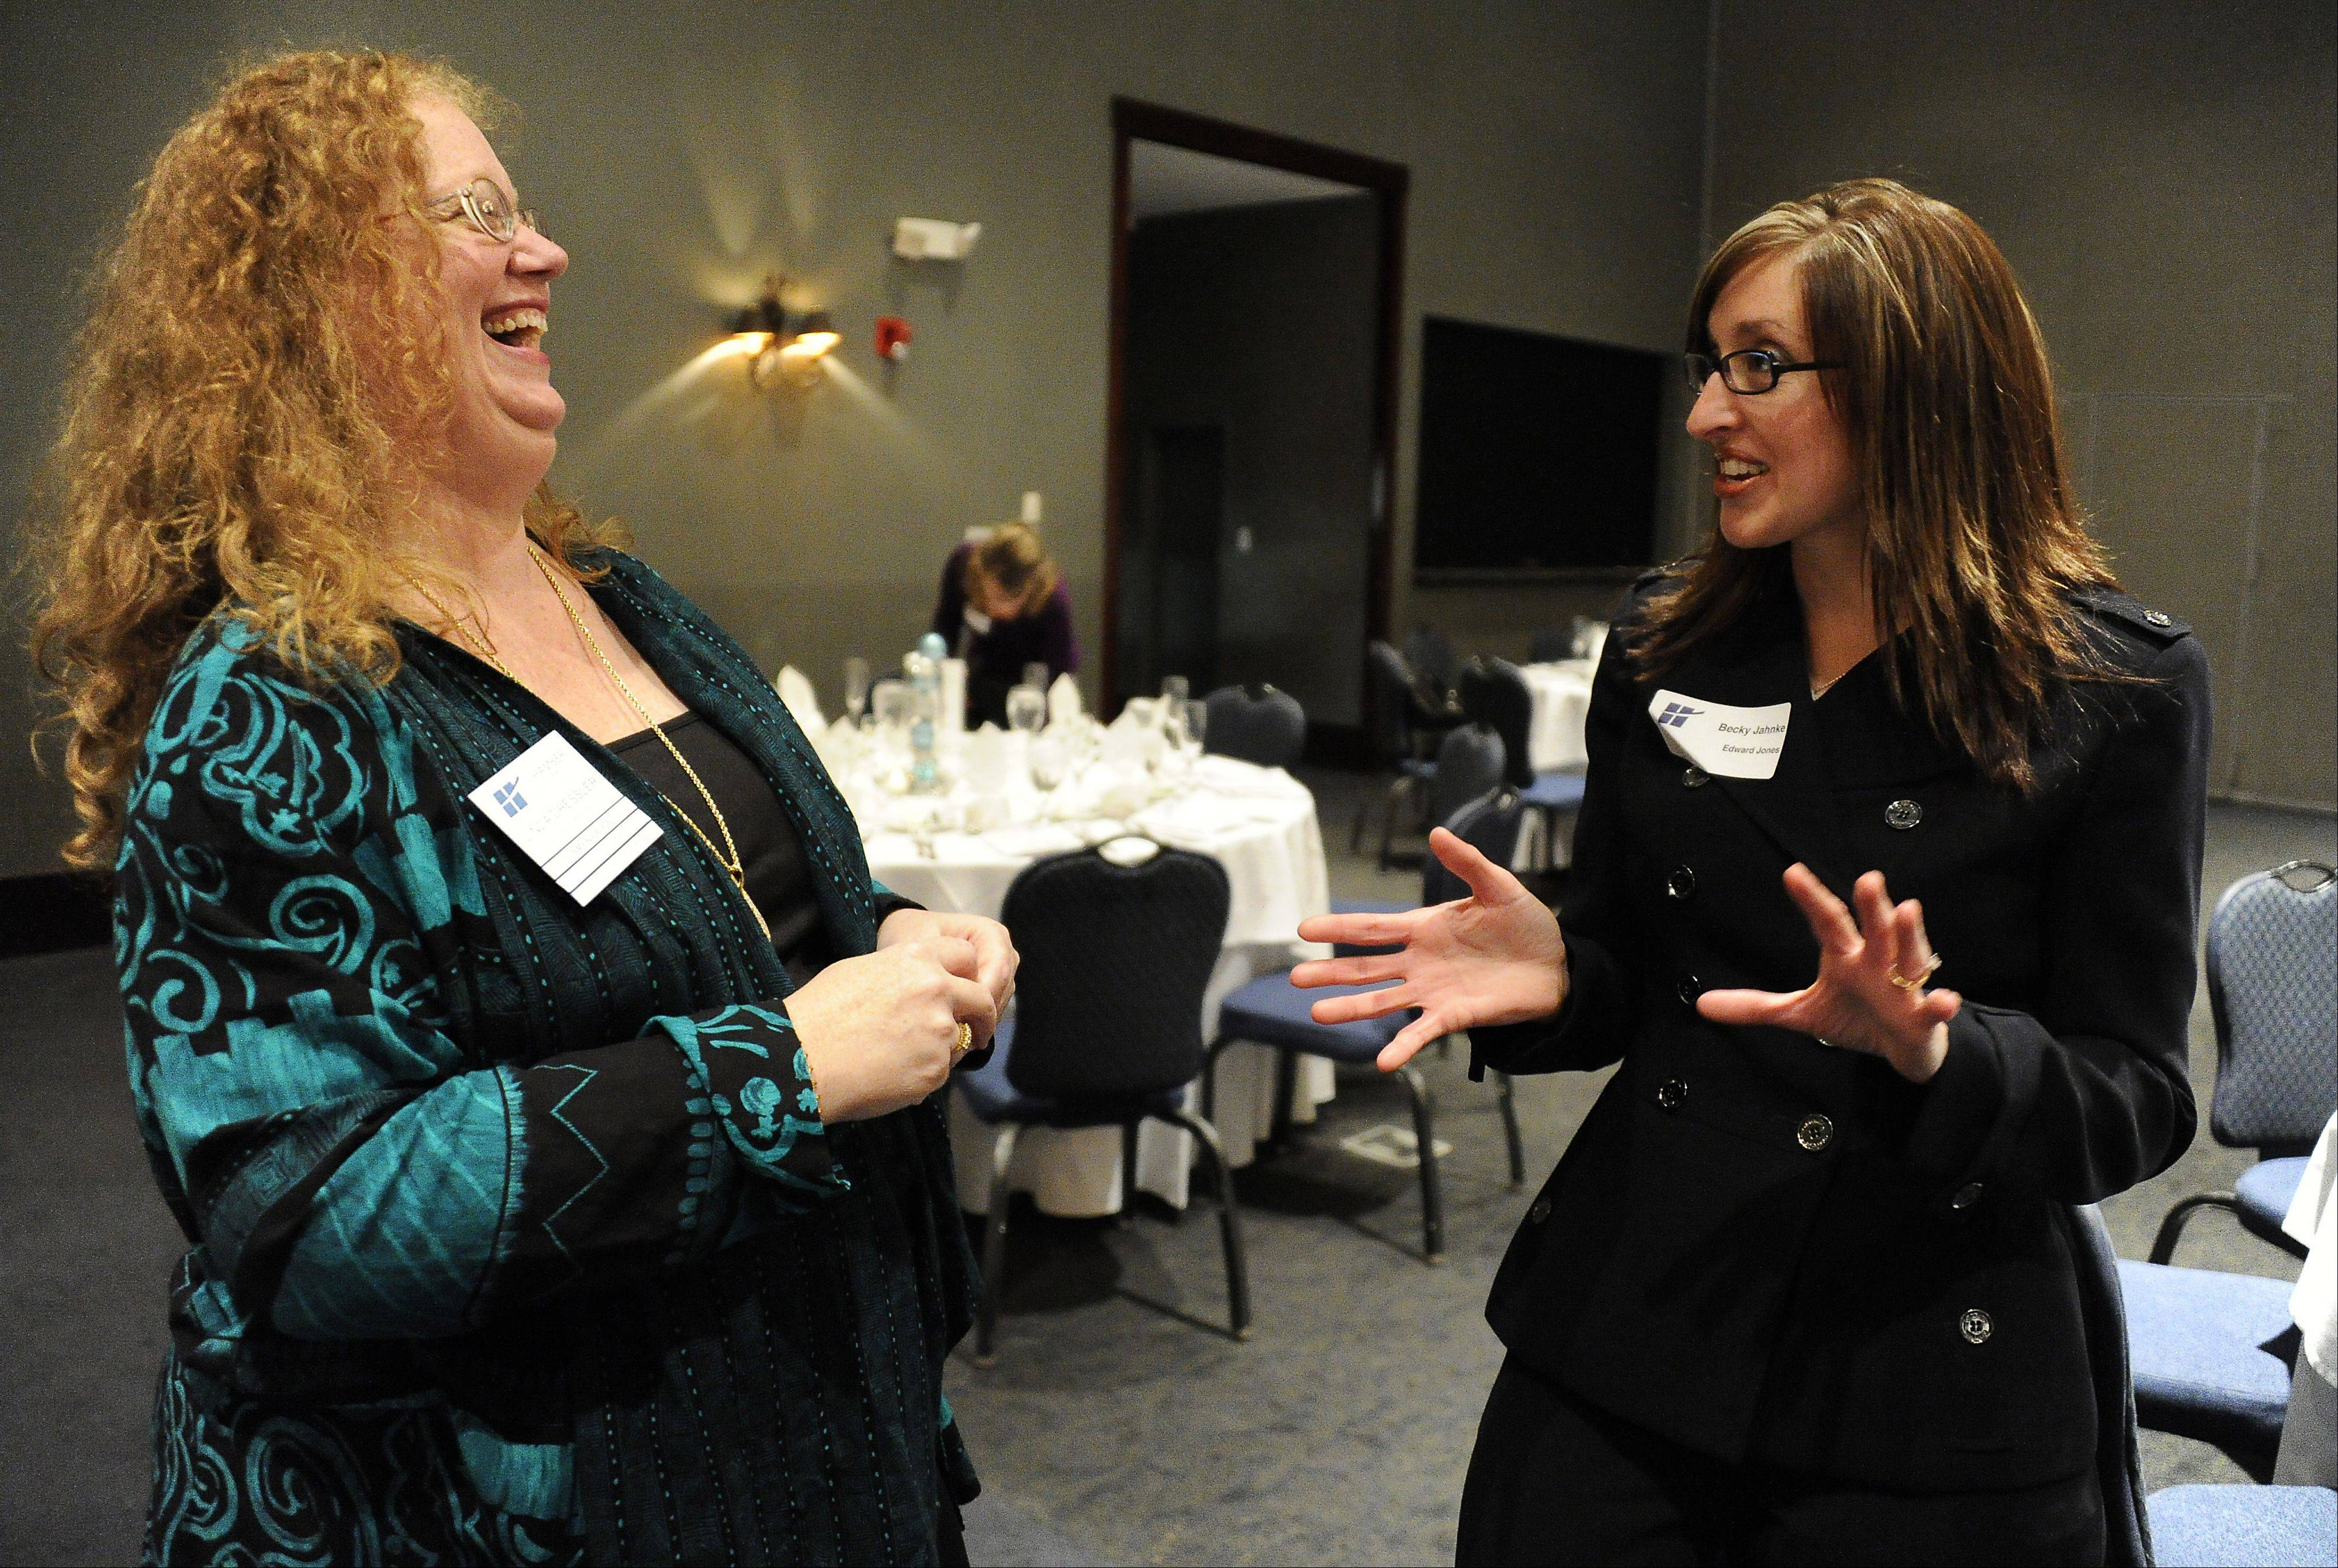 Volunteer of the Year nominees Linda Dressler, left, from ACM Reality in Hoffman Estates and Becky Jahnke of the Edward Jones Group share a laugh at the second annual Celebration of Excellence in Hoffman Estates on Thursday. Jahnke went on to win the Volunteer of the Year award later in the night.